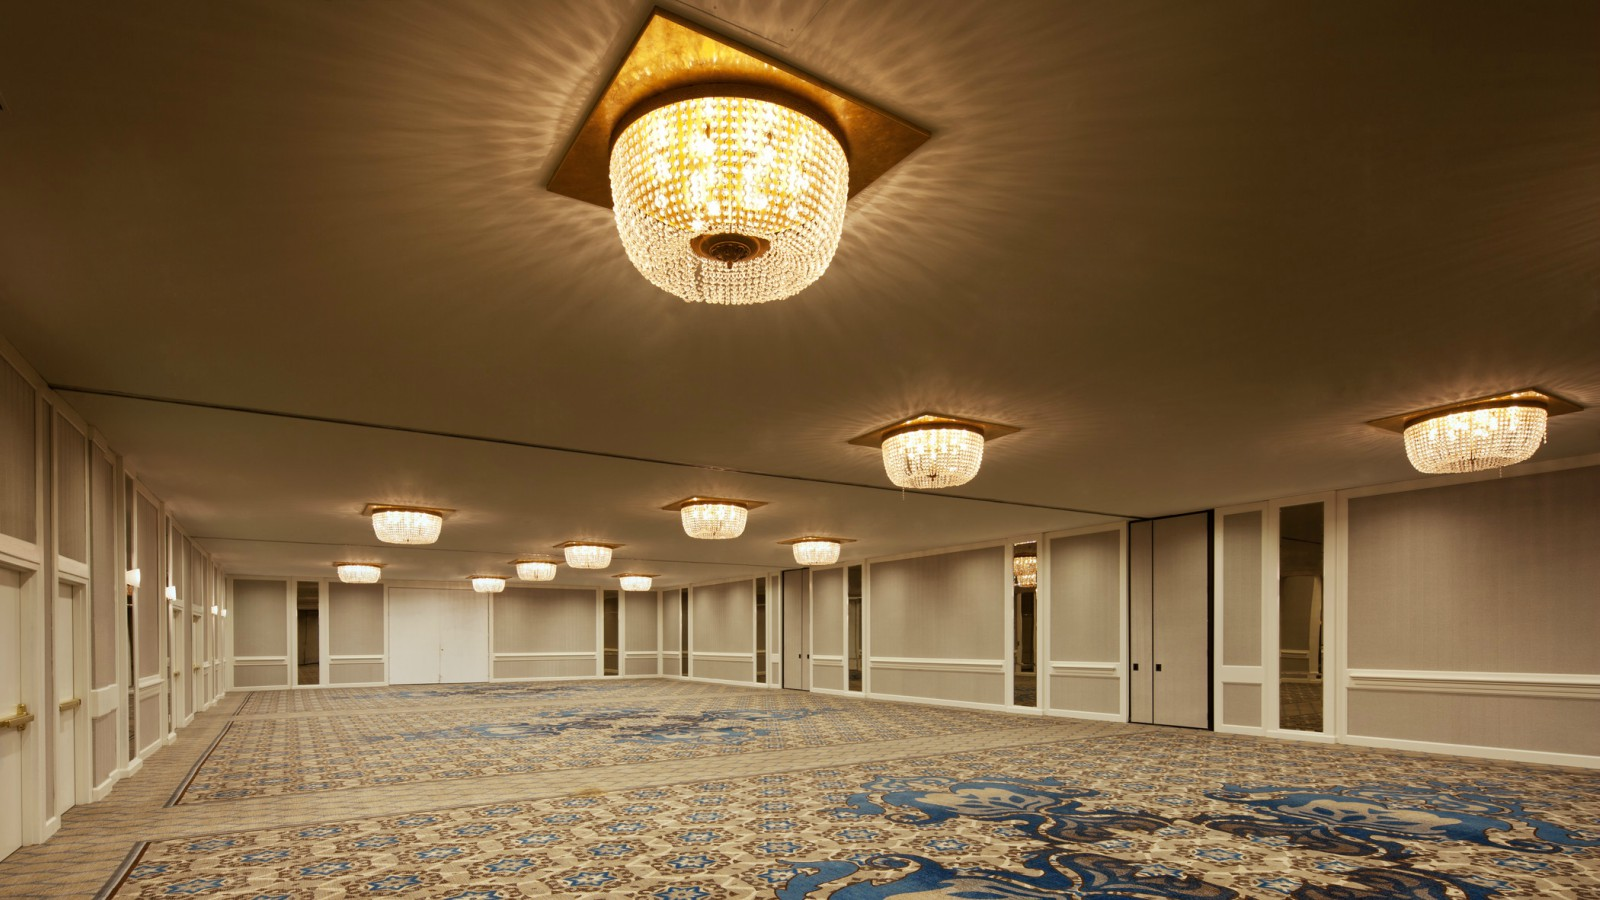 Studio Meeting Rooms - Sheraton Universal Hotel